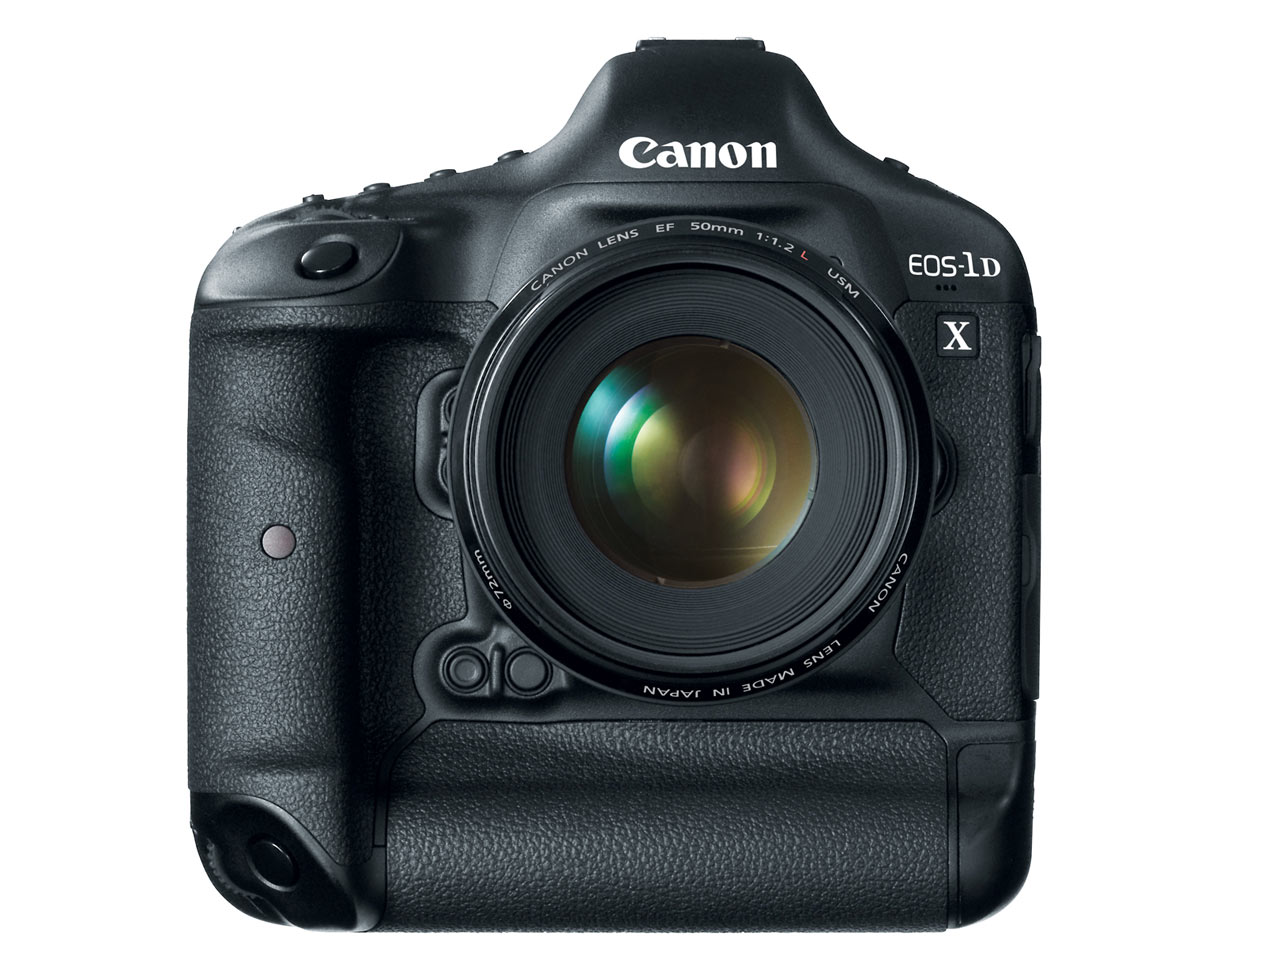 Canon EOS-1D X mini review by Christopher Dodds